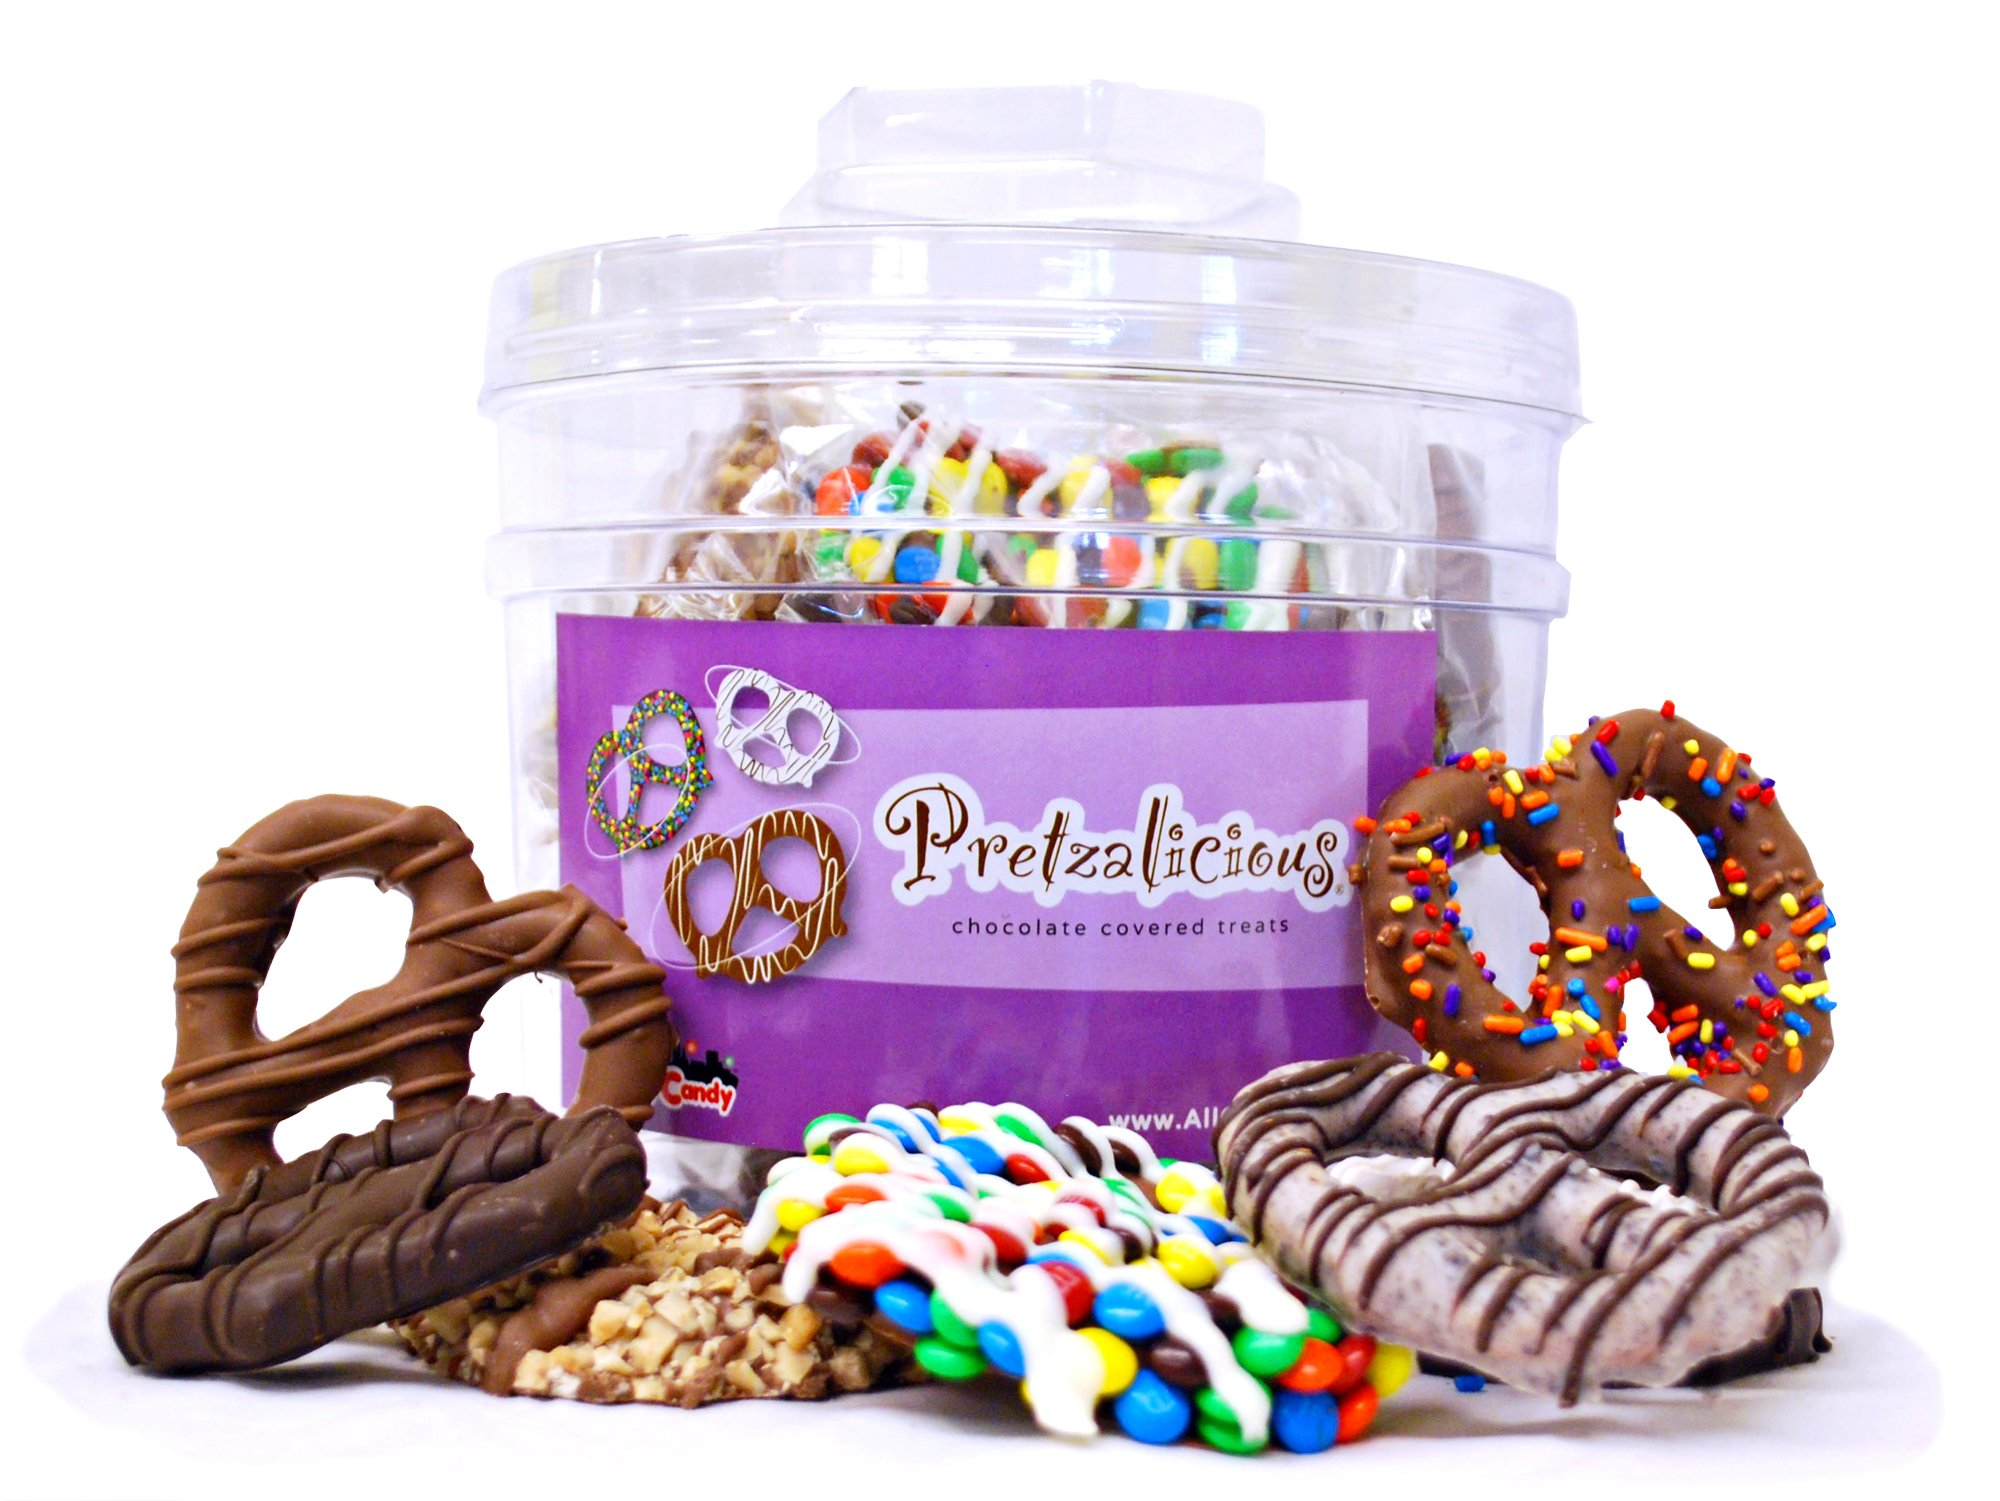 All City Candy's Bucket of Fun Hand Dipped Gourmet Chocolate Covered Pretzels and Cookies